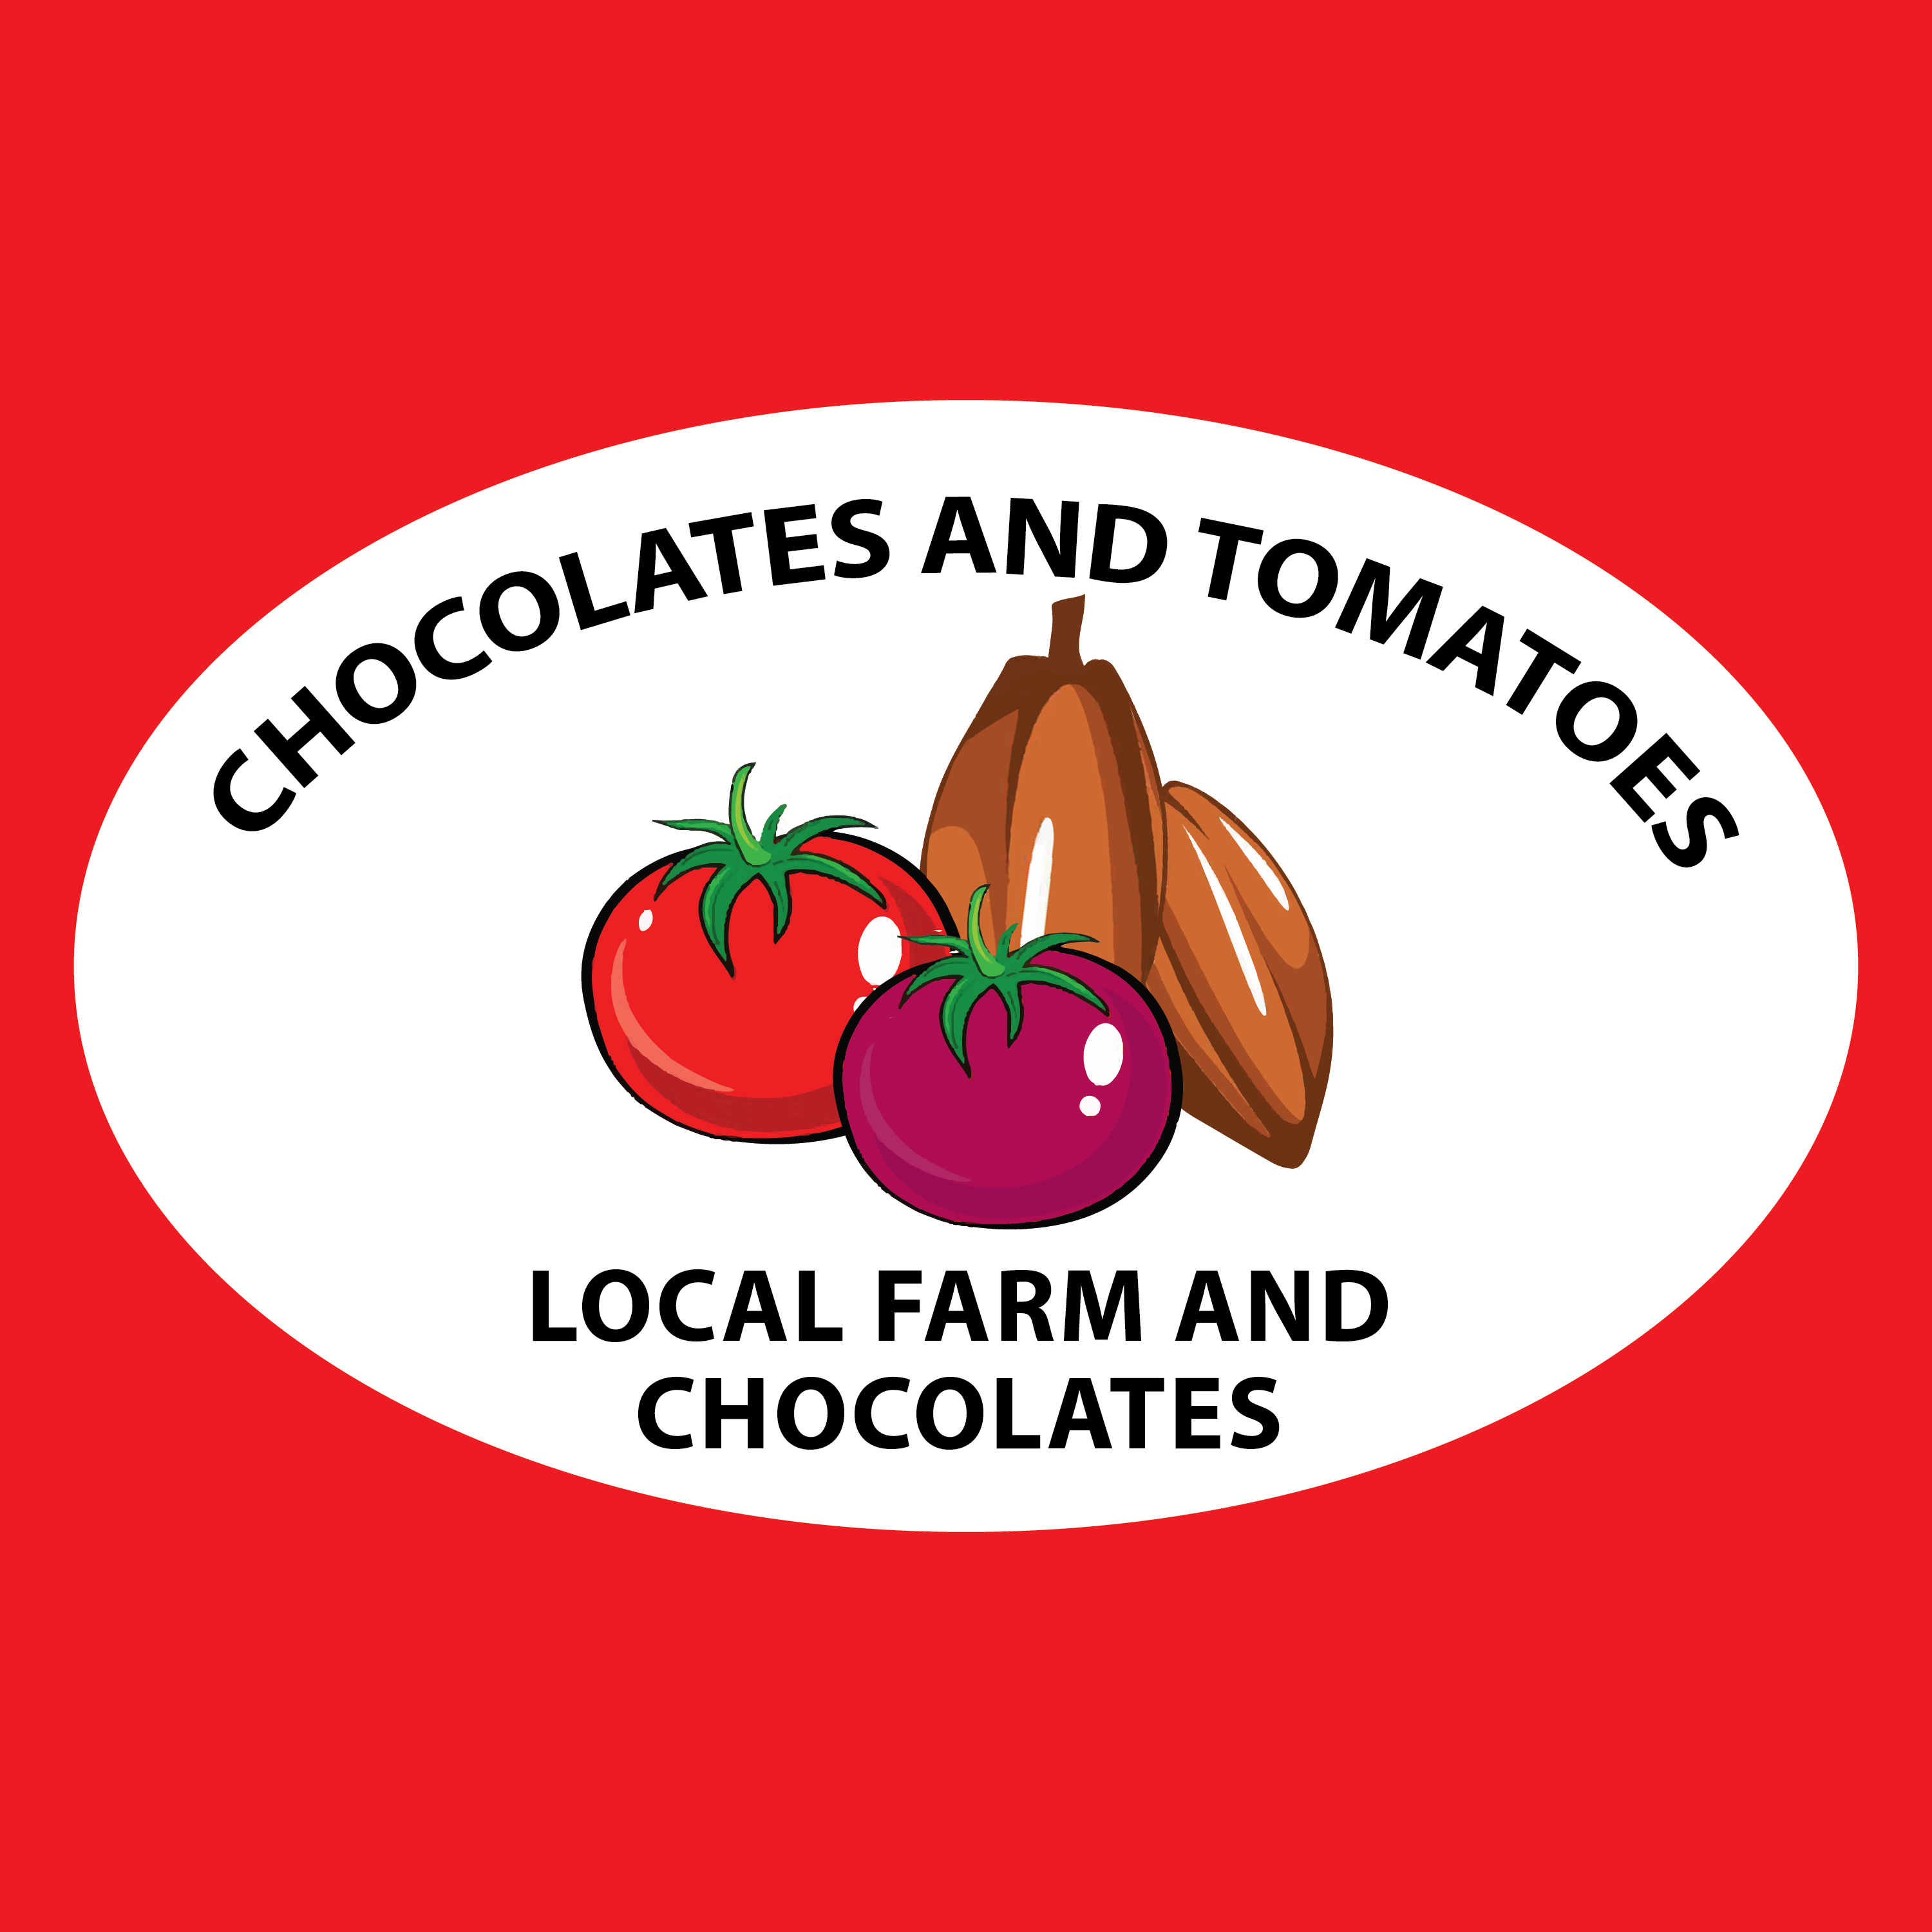 Chocolates and Tomatoes